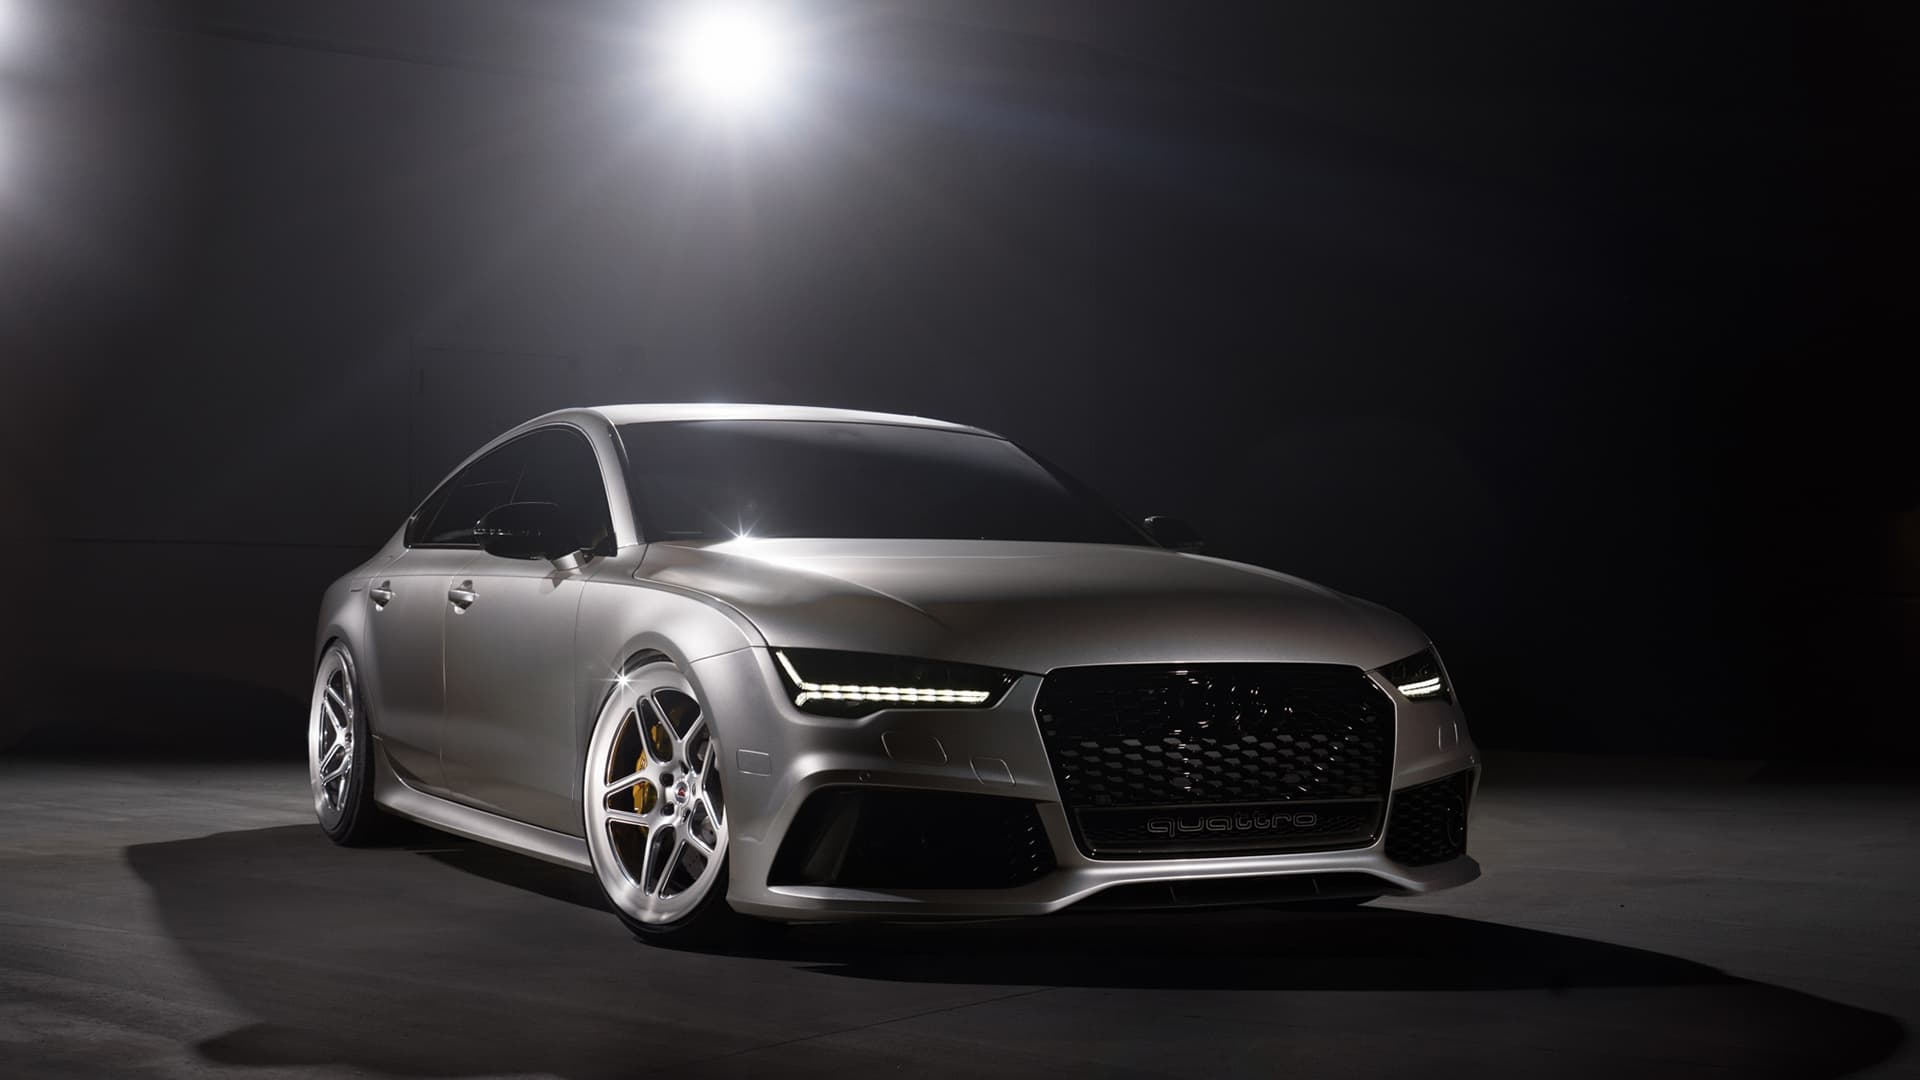 2016 Audi RS7 Wallpapers HD HIgh Quality Resolution Download